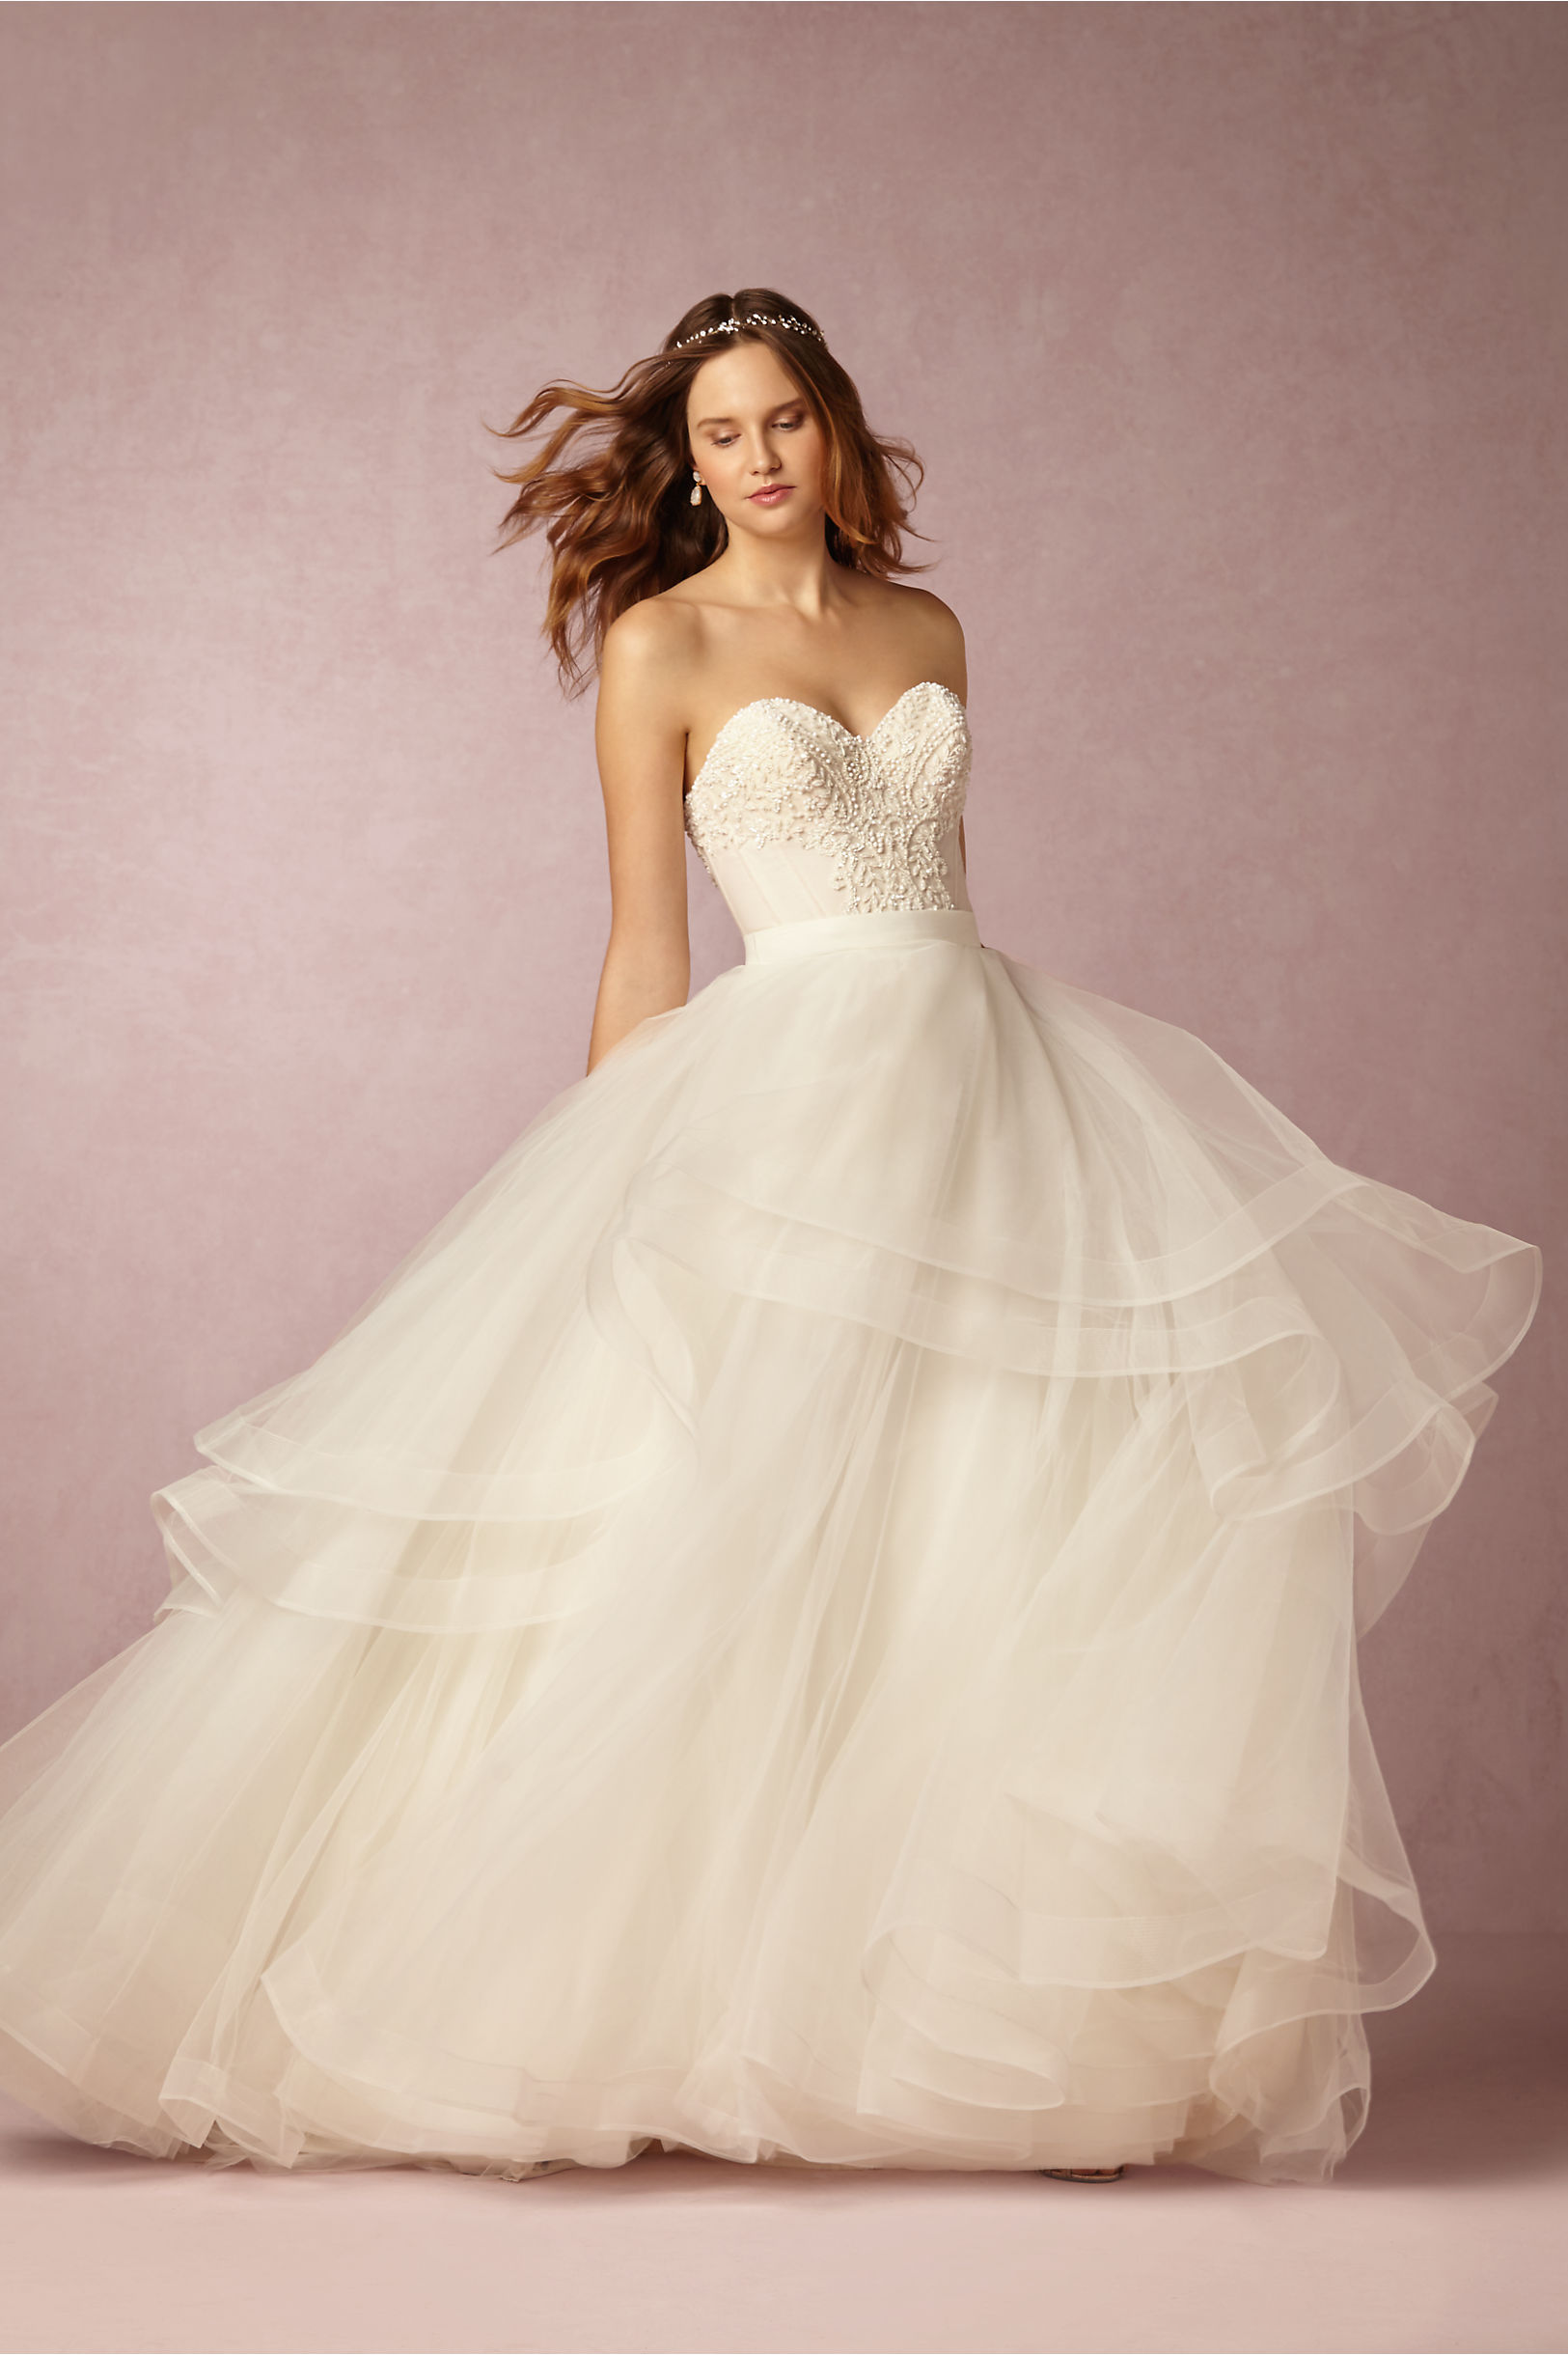 Recommended Strapless Wedding Dresses